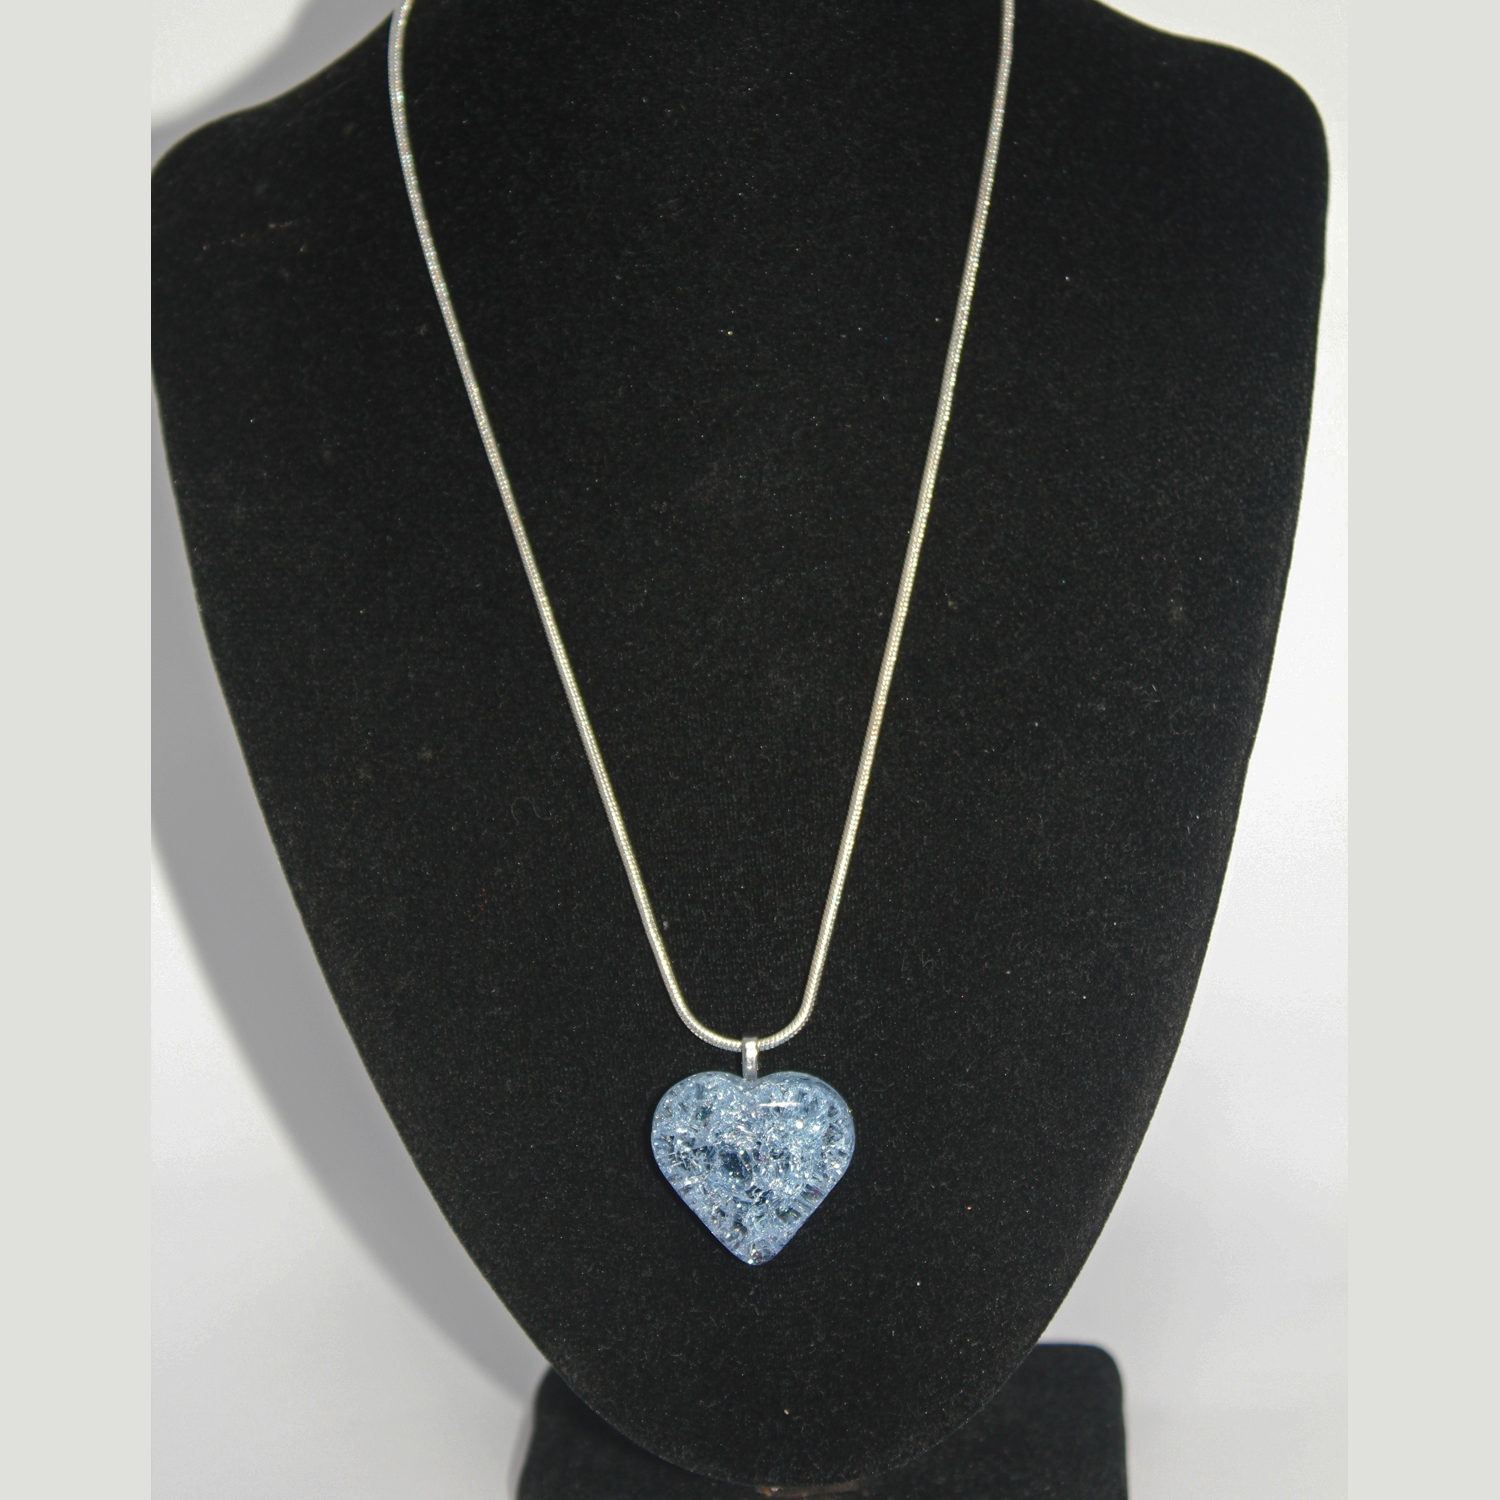 Pale Blue Heart Cracked Glass Necklace